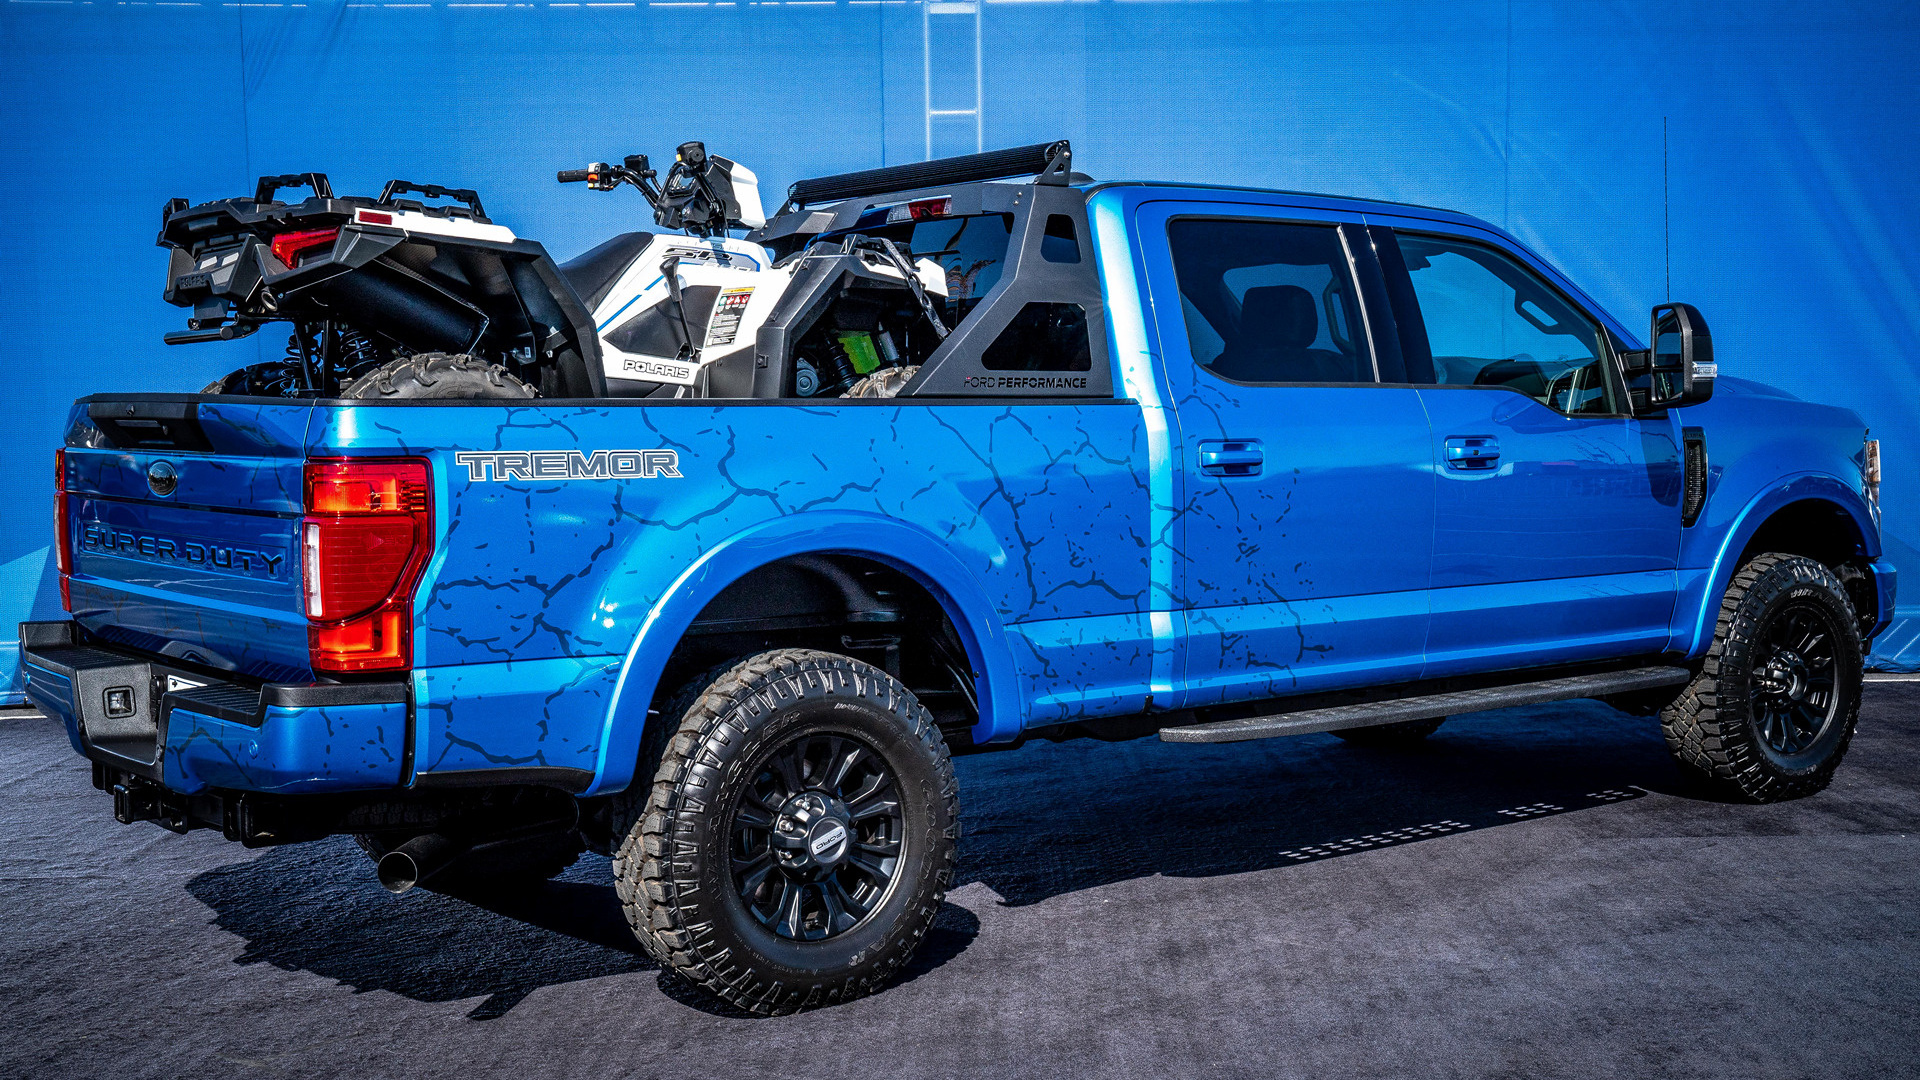 2019 ford f-250 super duty tremor crew cab black appearance package